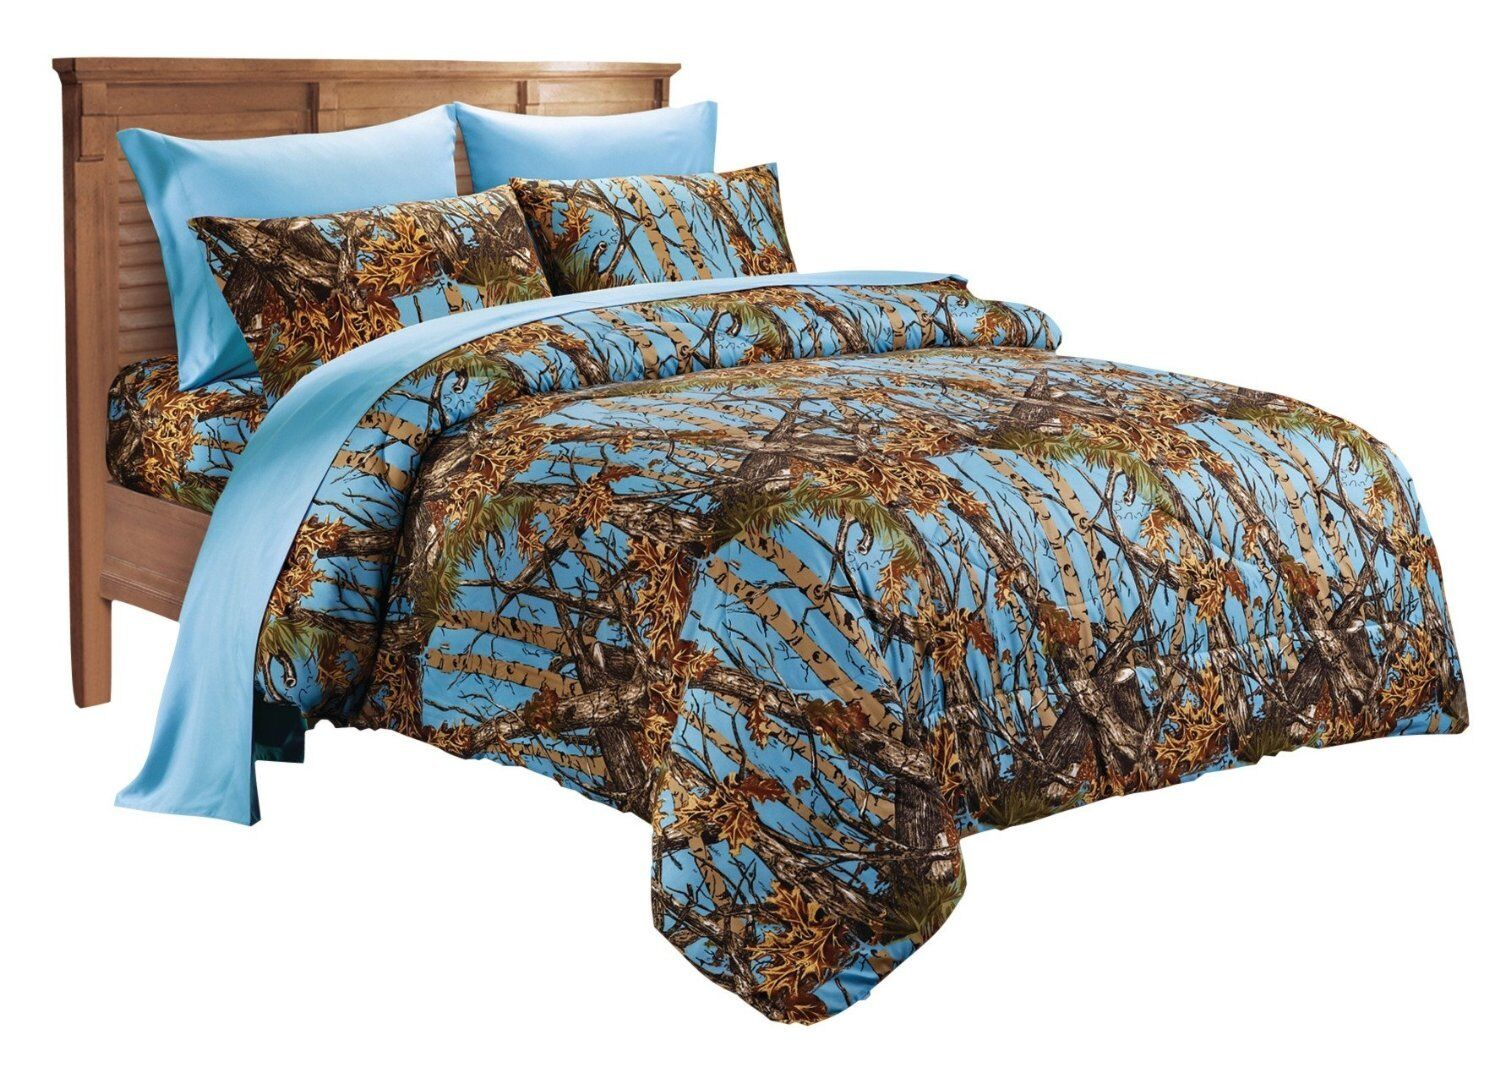 camouflage comforter woods queen size 7pc set powder blue camo comforter sheet camouflage bedding - Camouflage Bedding